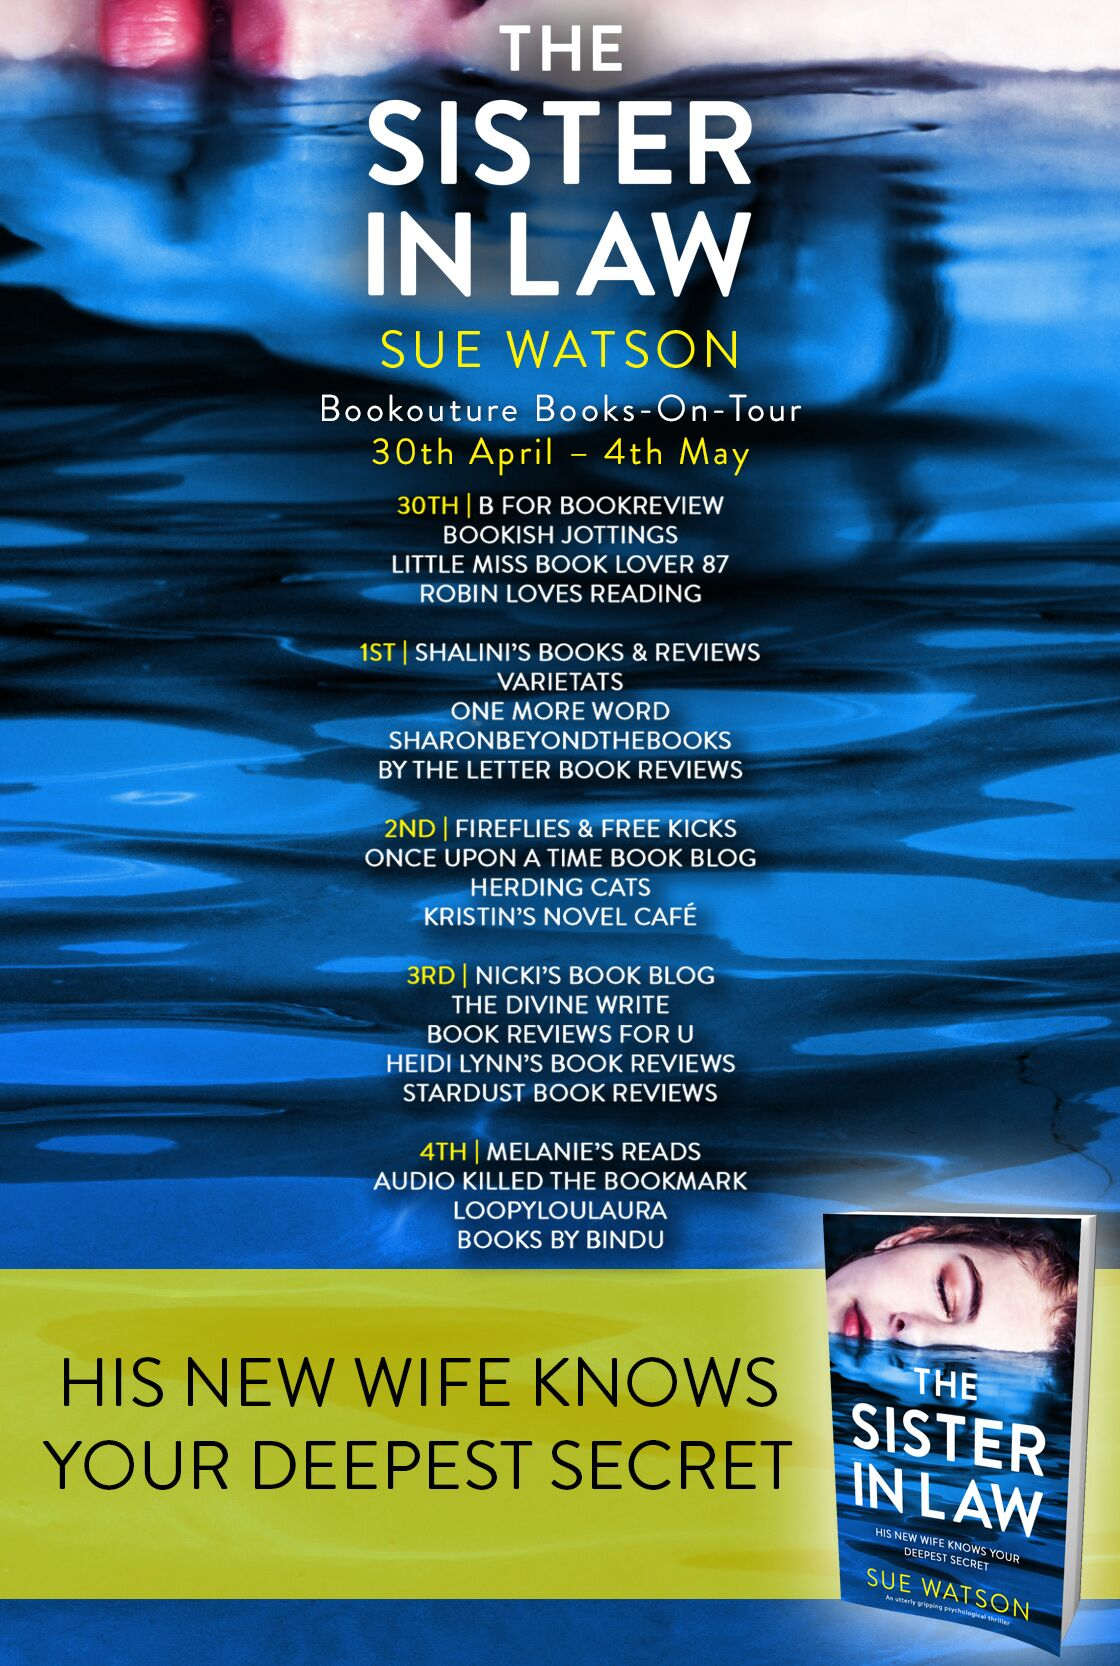 The Sister in Law book tour banner